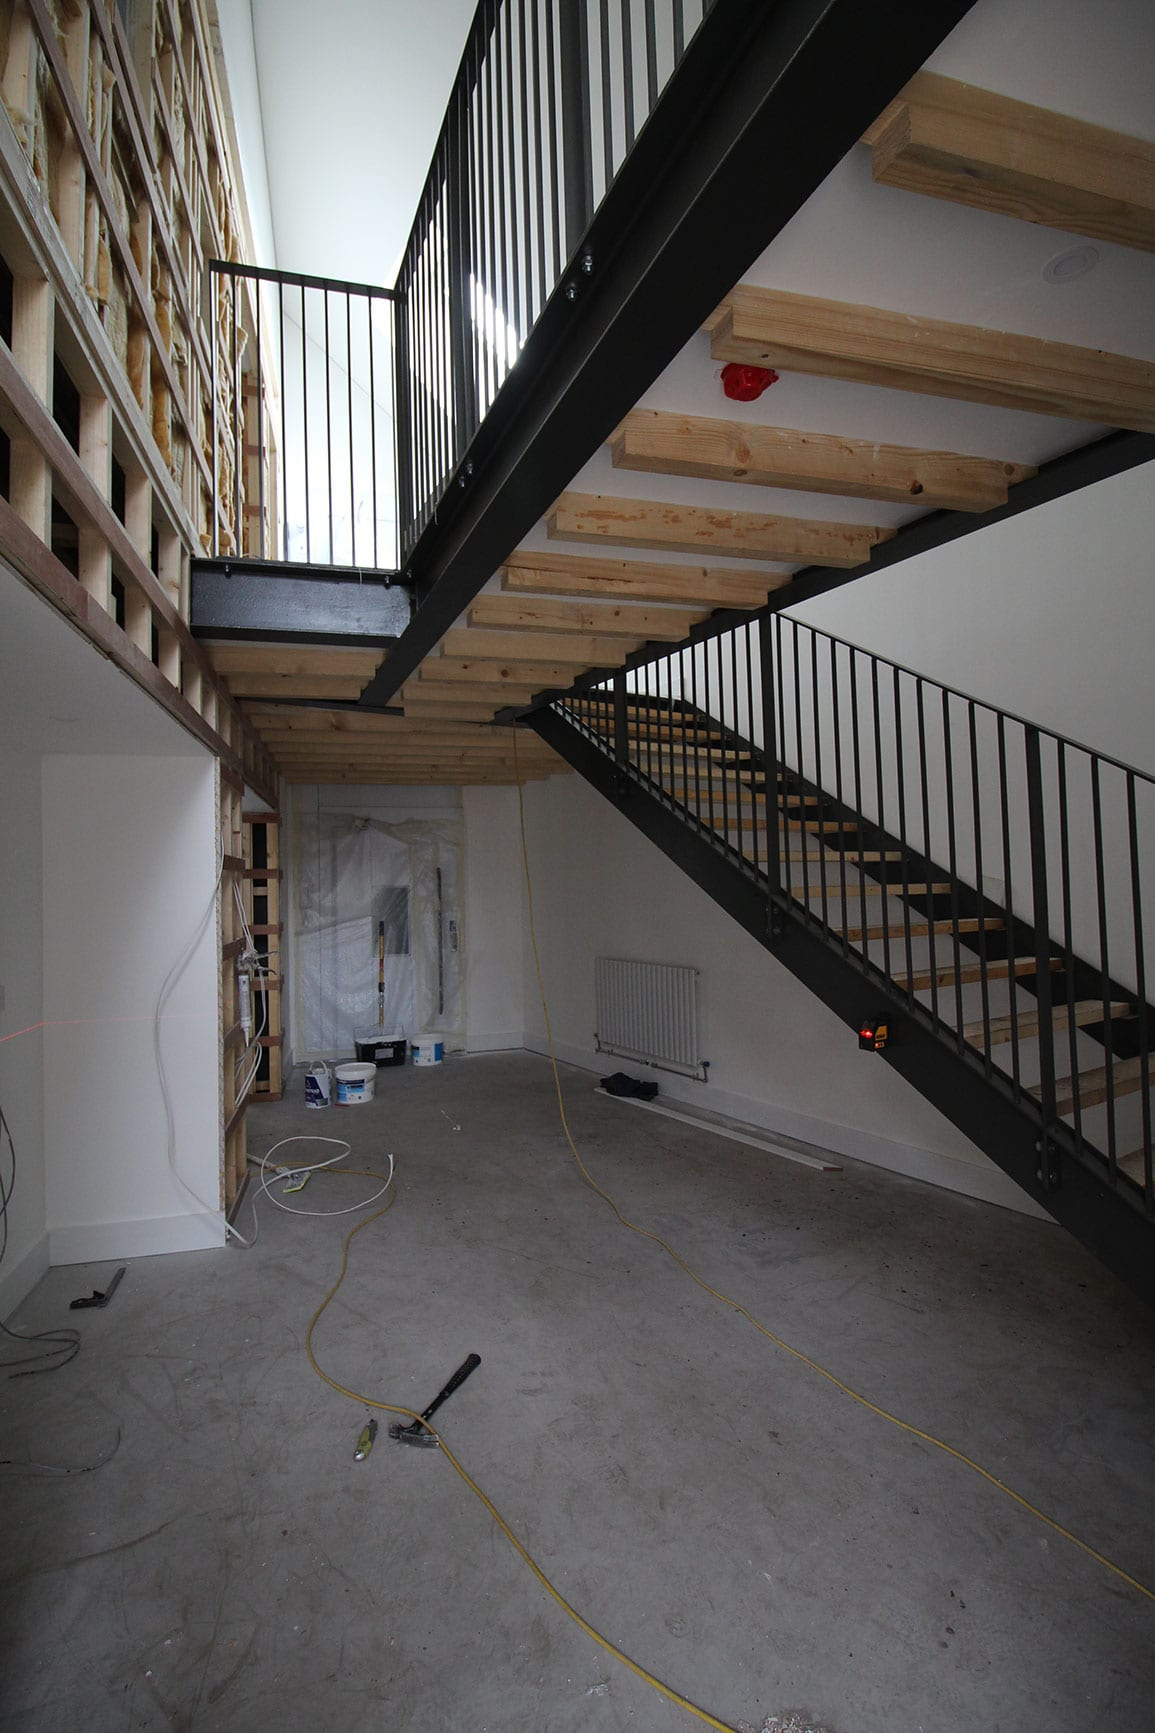 Architectural Emporium Walk the plank in progress site photo staircase